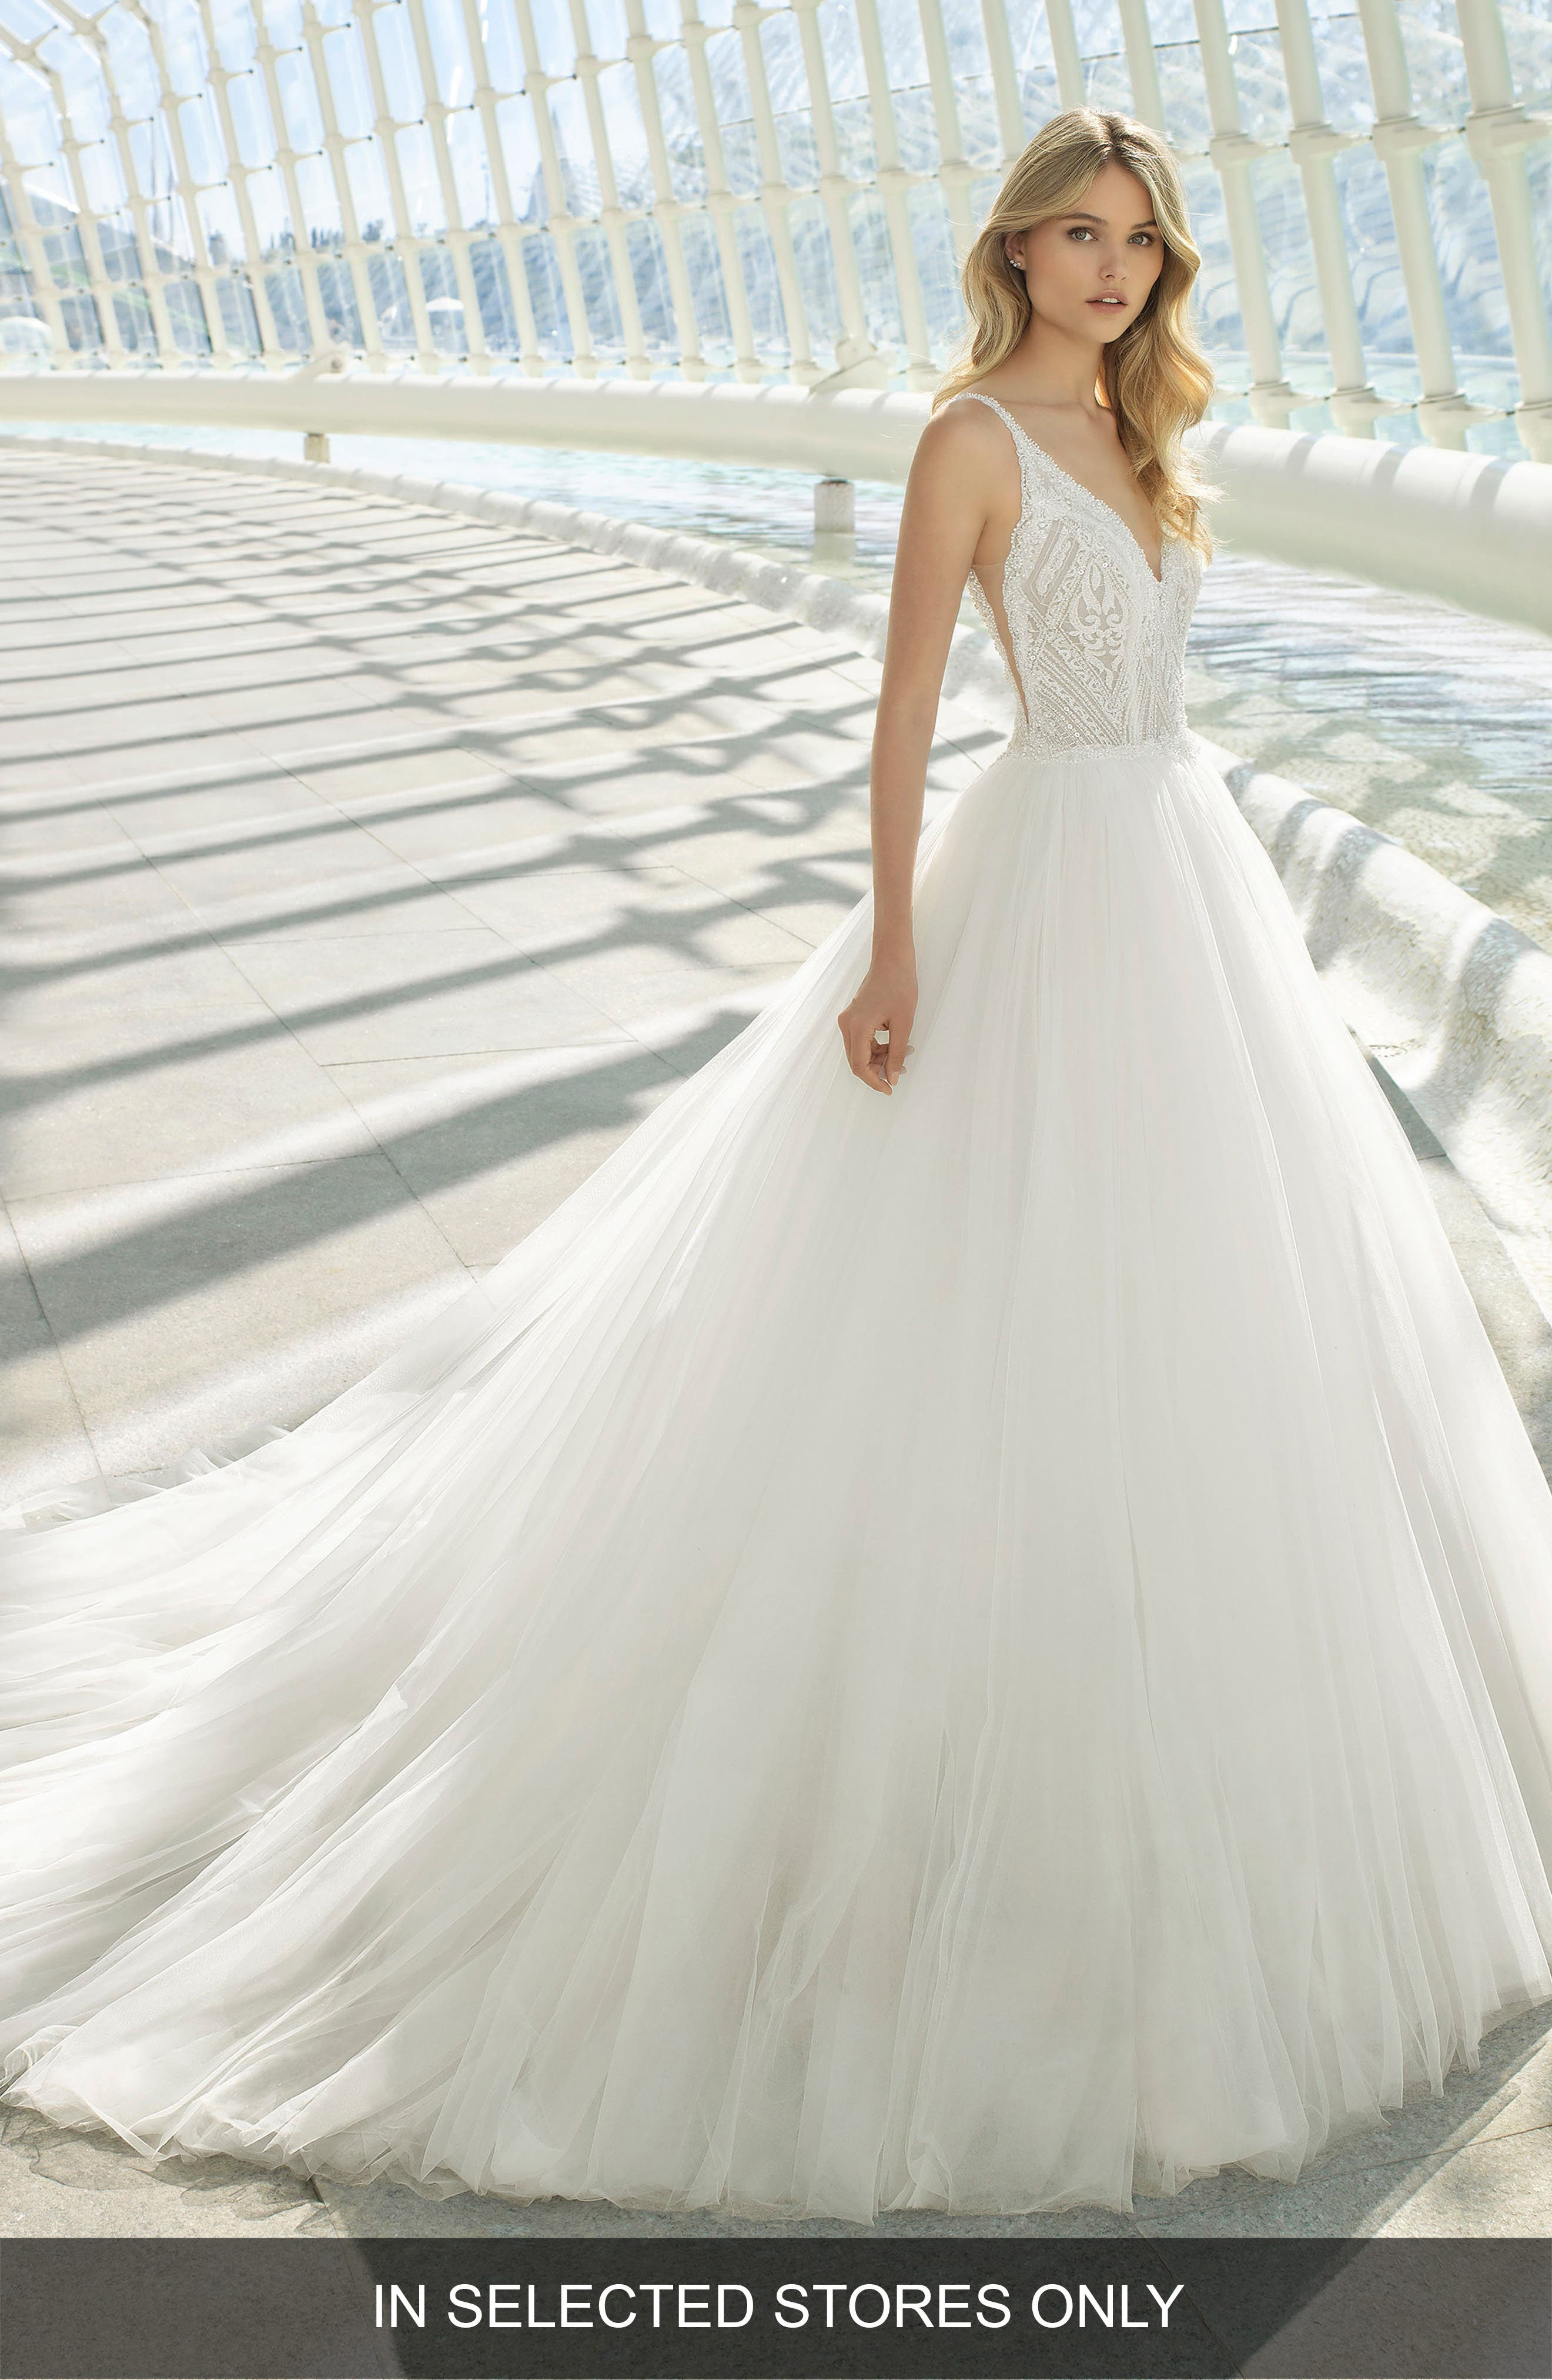 Doe Diamond Lace & Tulle Gown,                             Main thumbnail 1, color,                             NATURAL